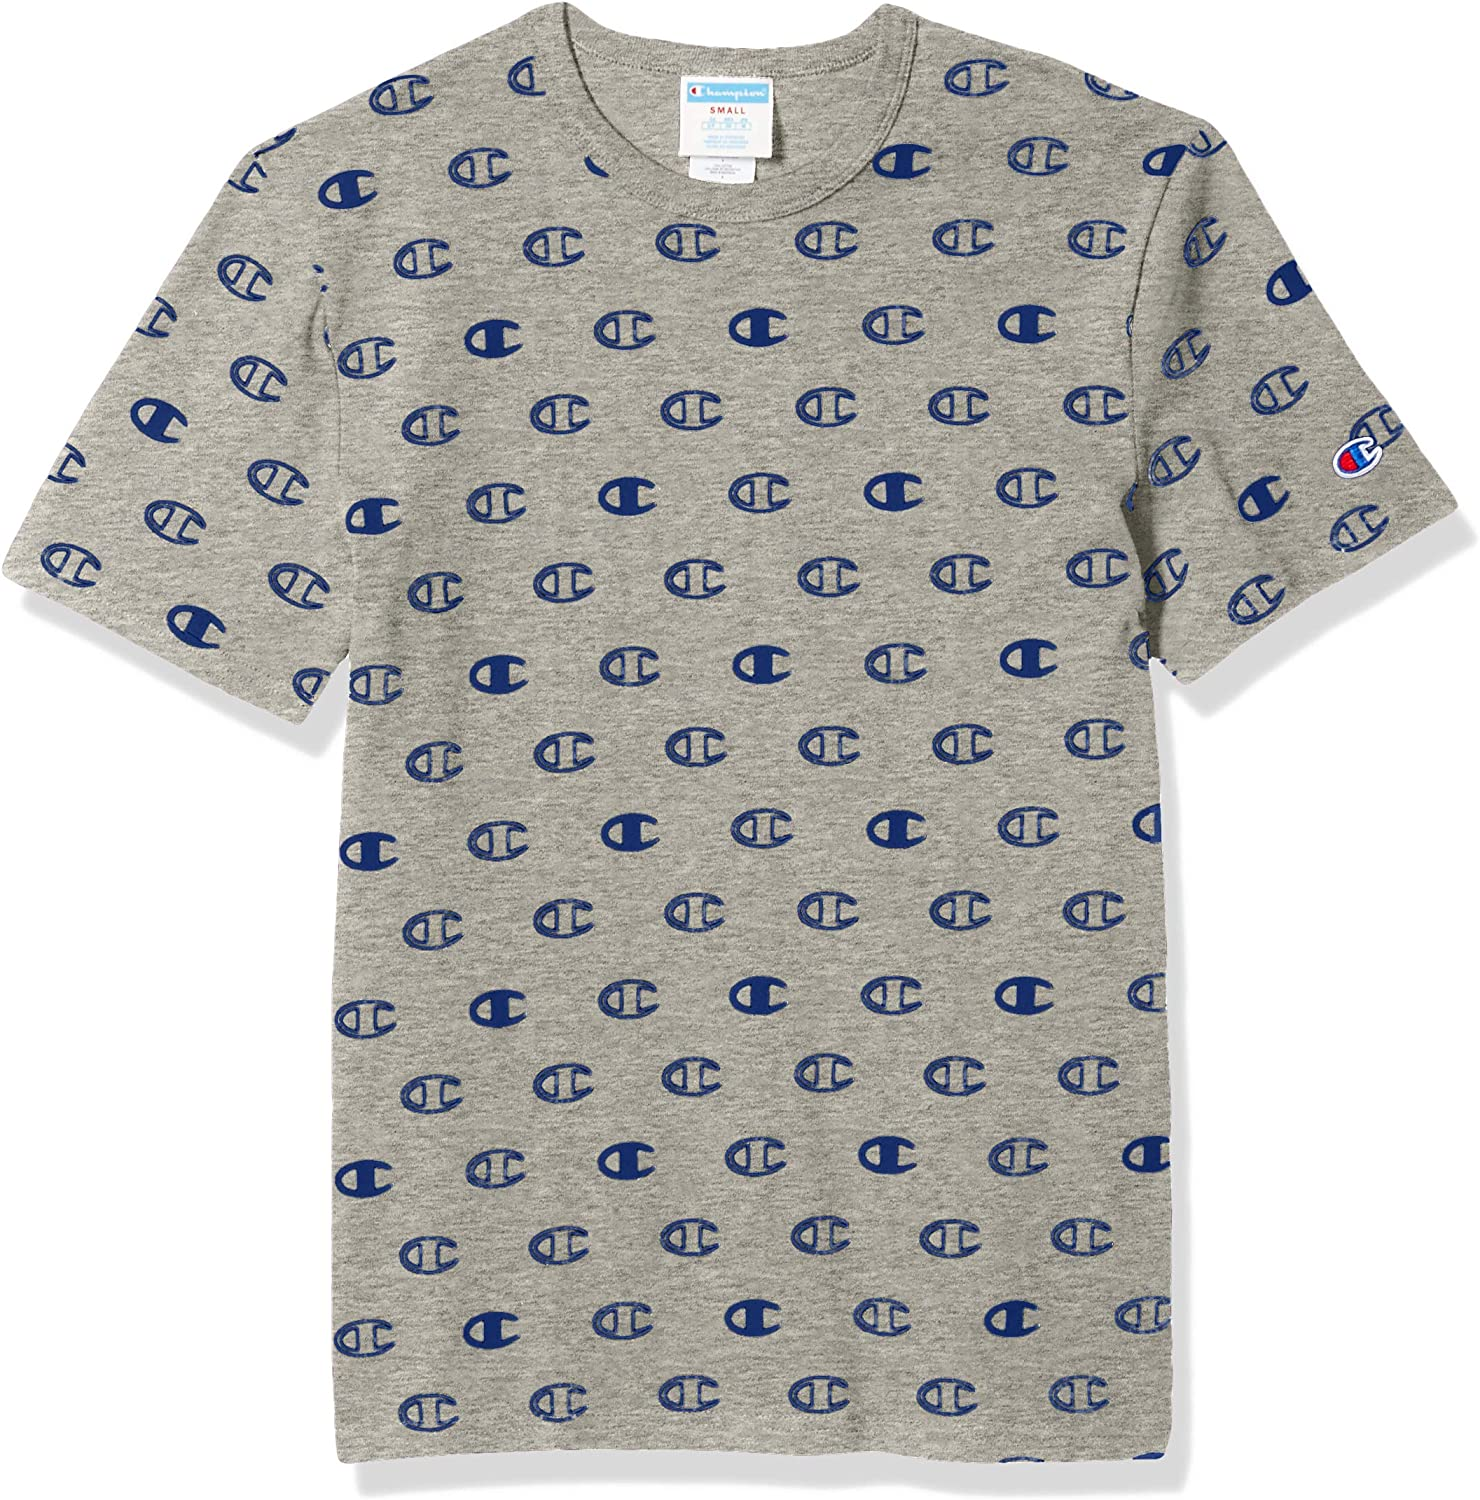 Champion Mens Heritage Short Sleeve Tee with Tossed C Logos T-Shirt